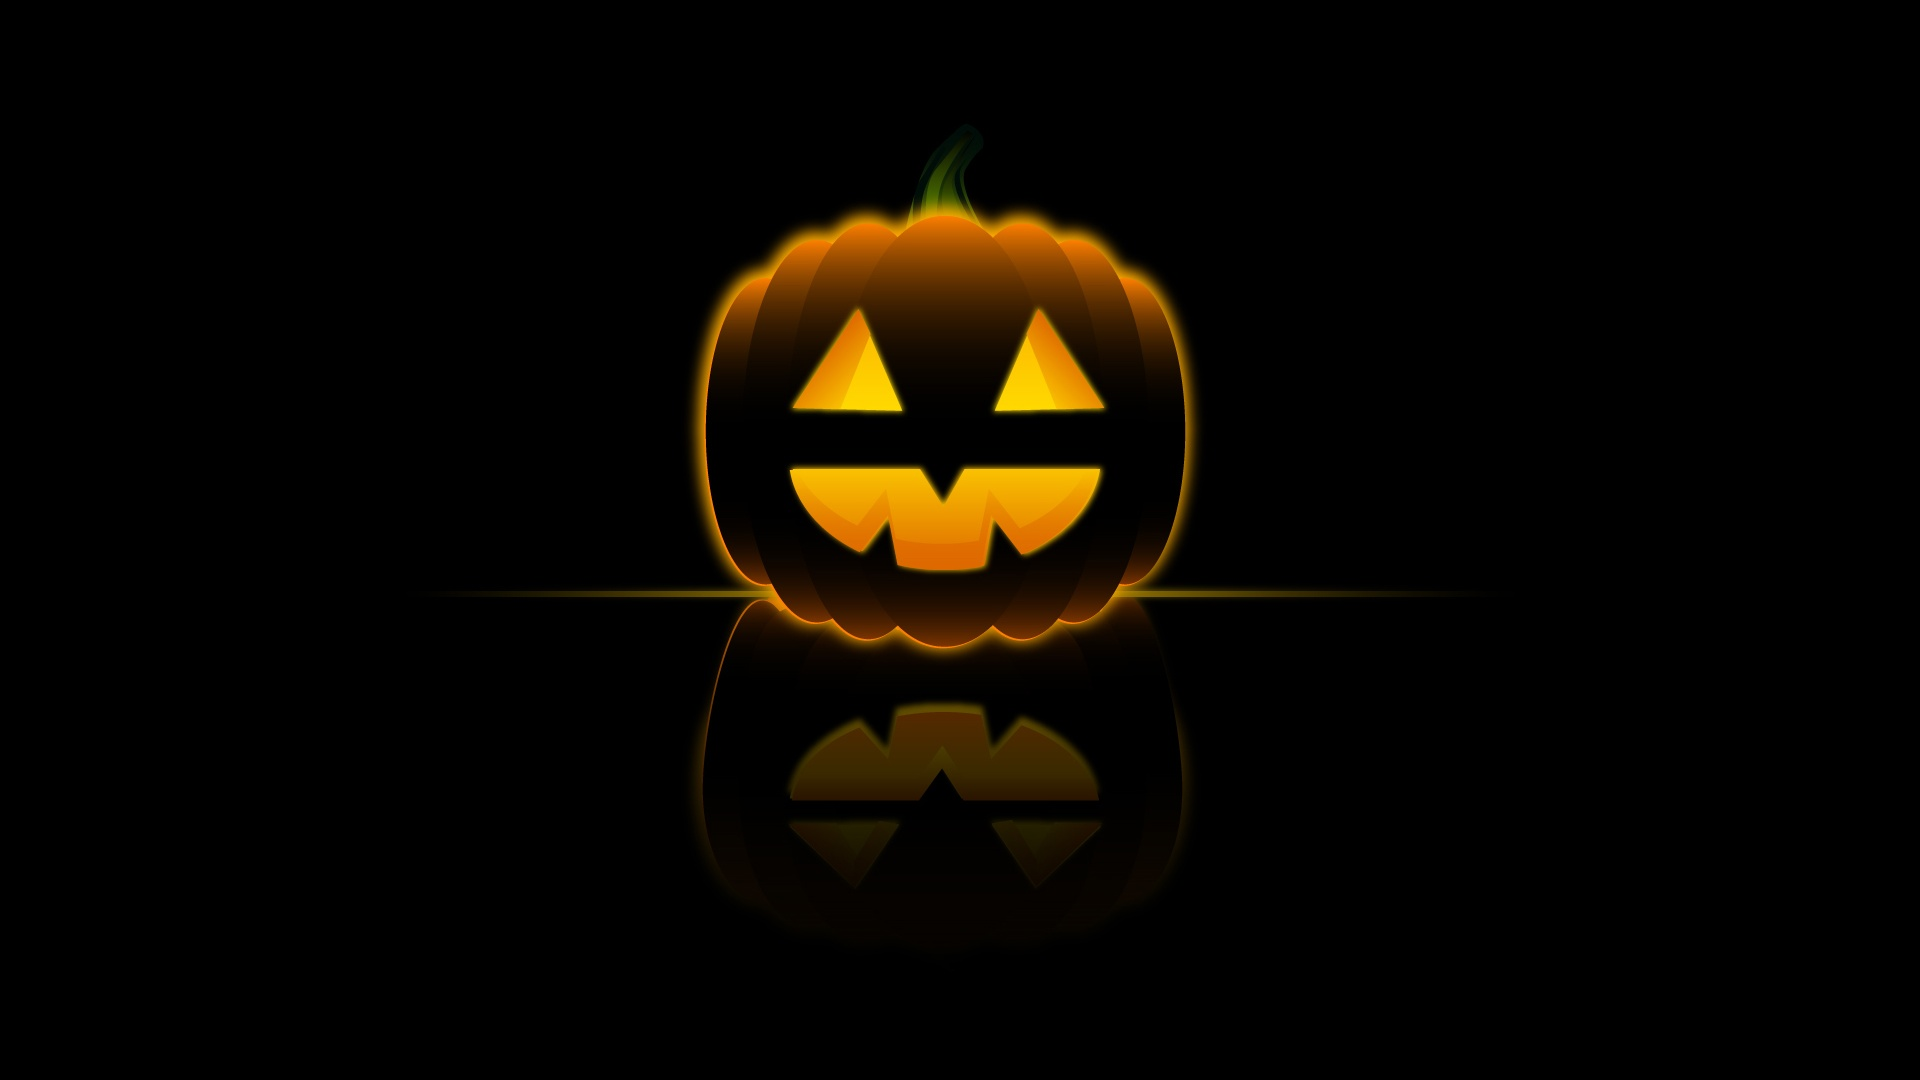 1920x1080 Halloween Pumpkin Desktop PC And Mac Wallpaper